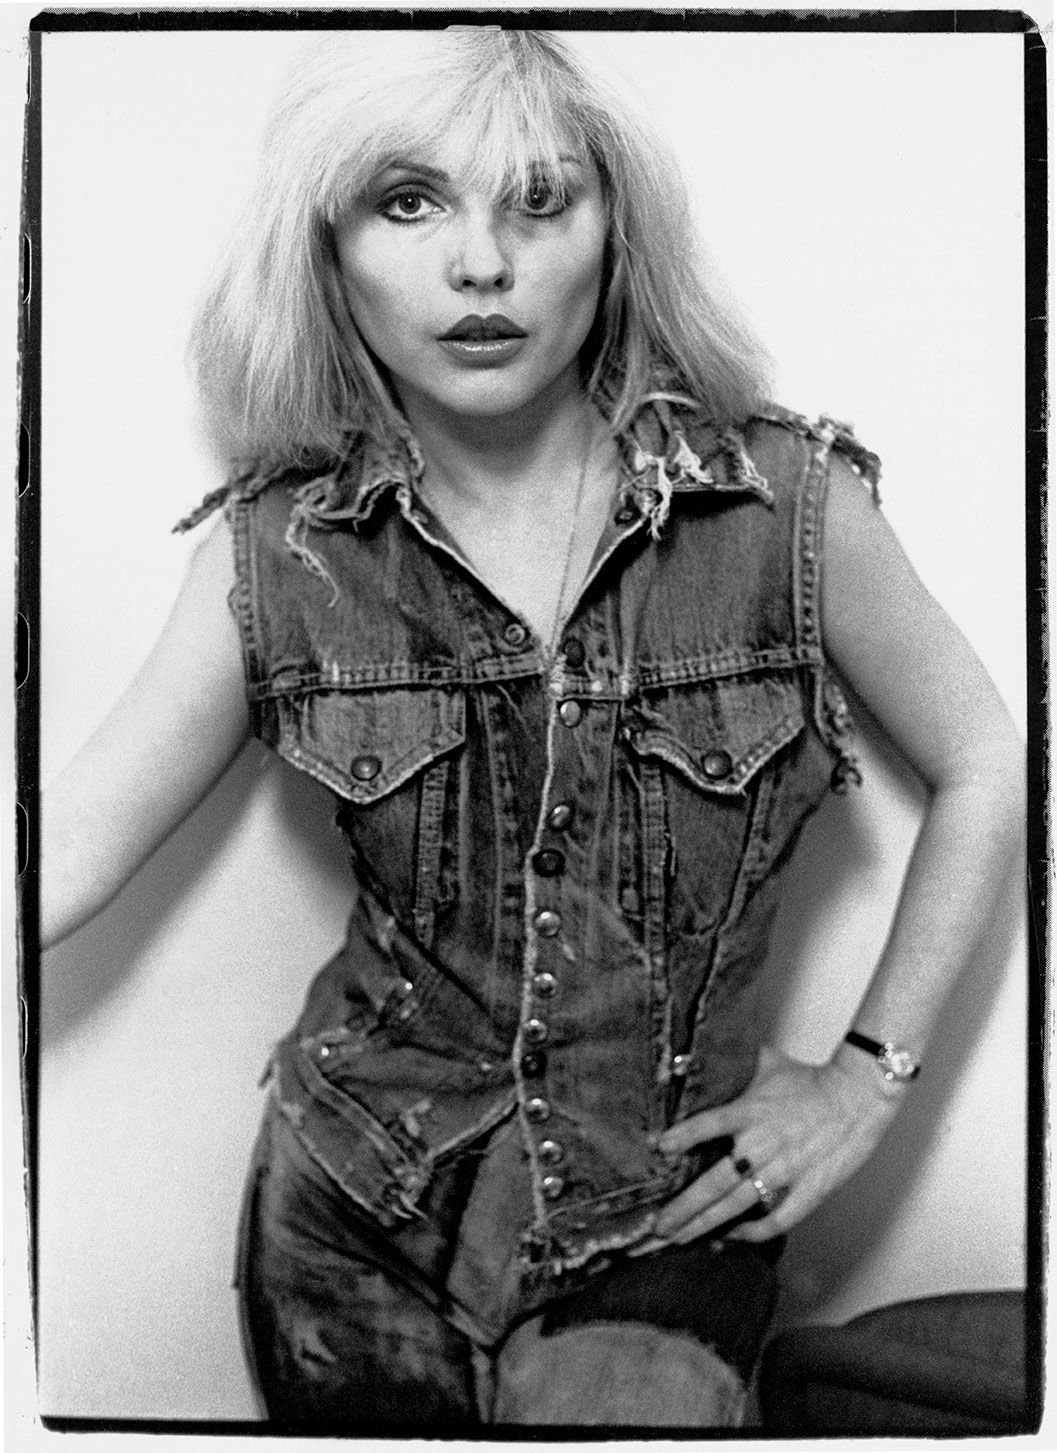 Debbie harry nude Nude Photos